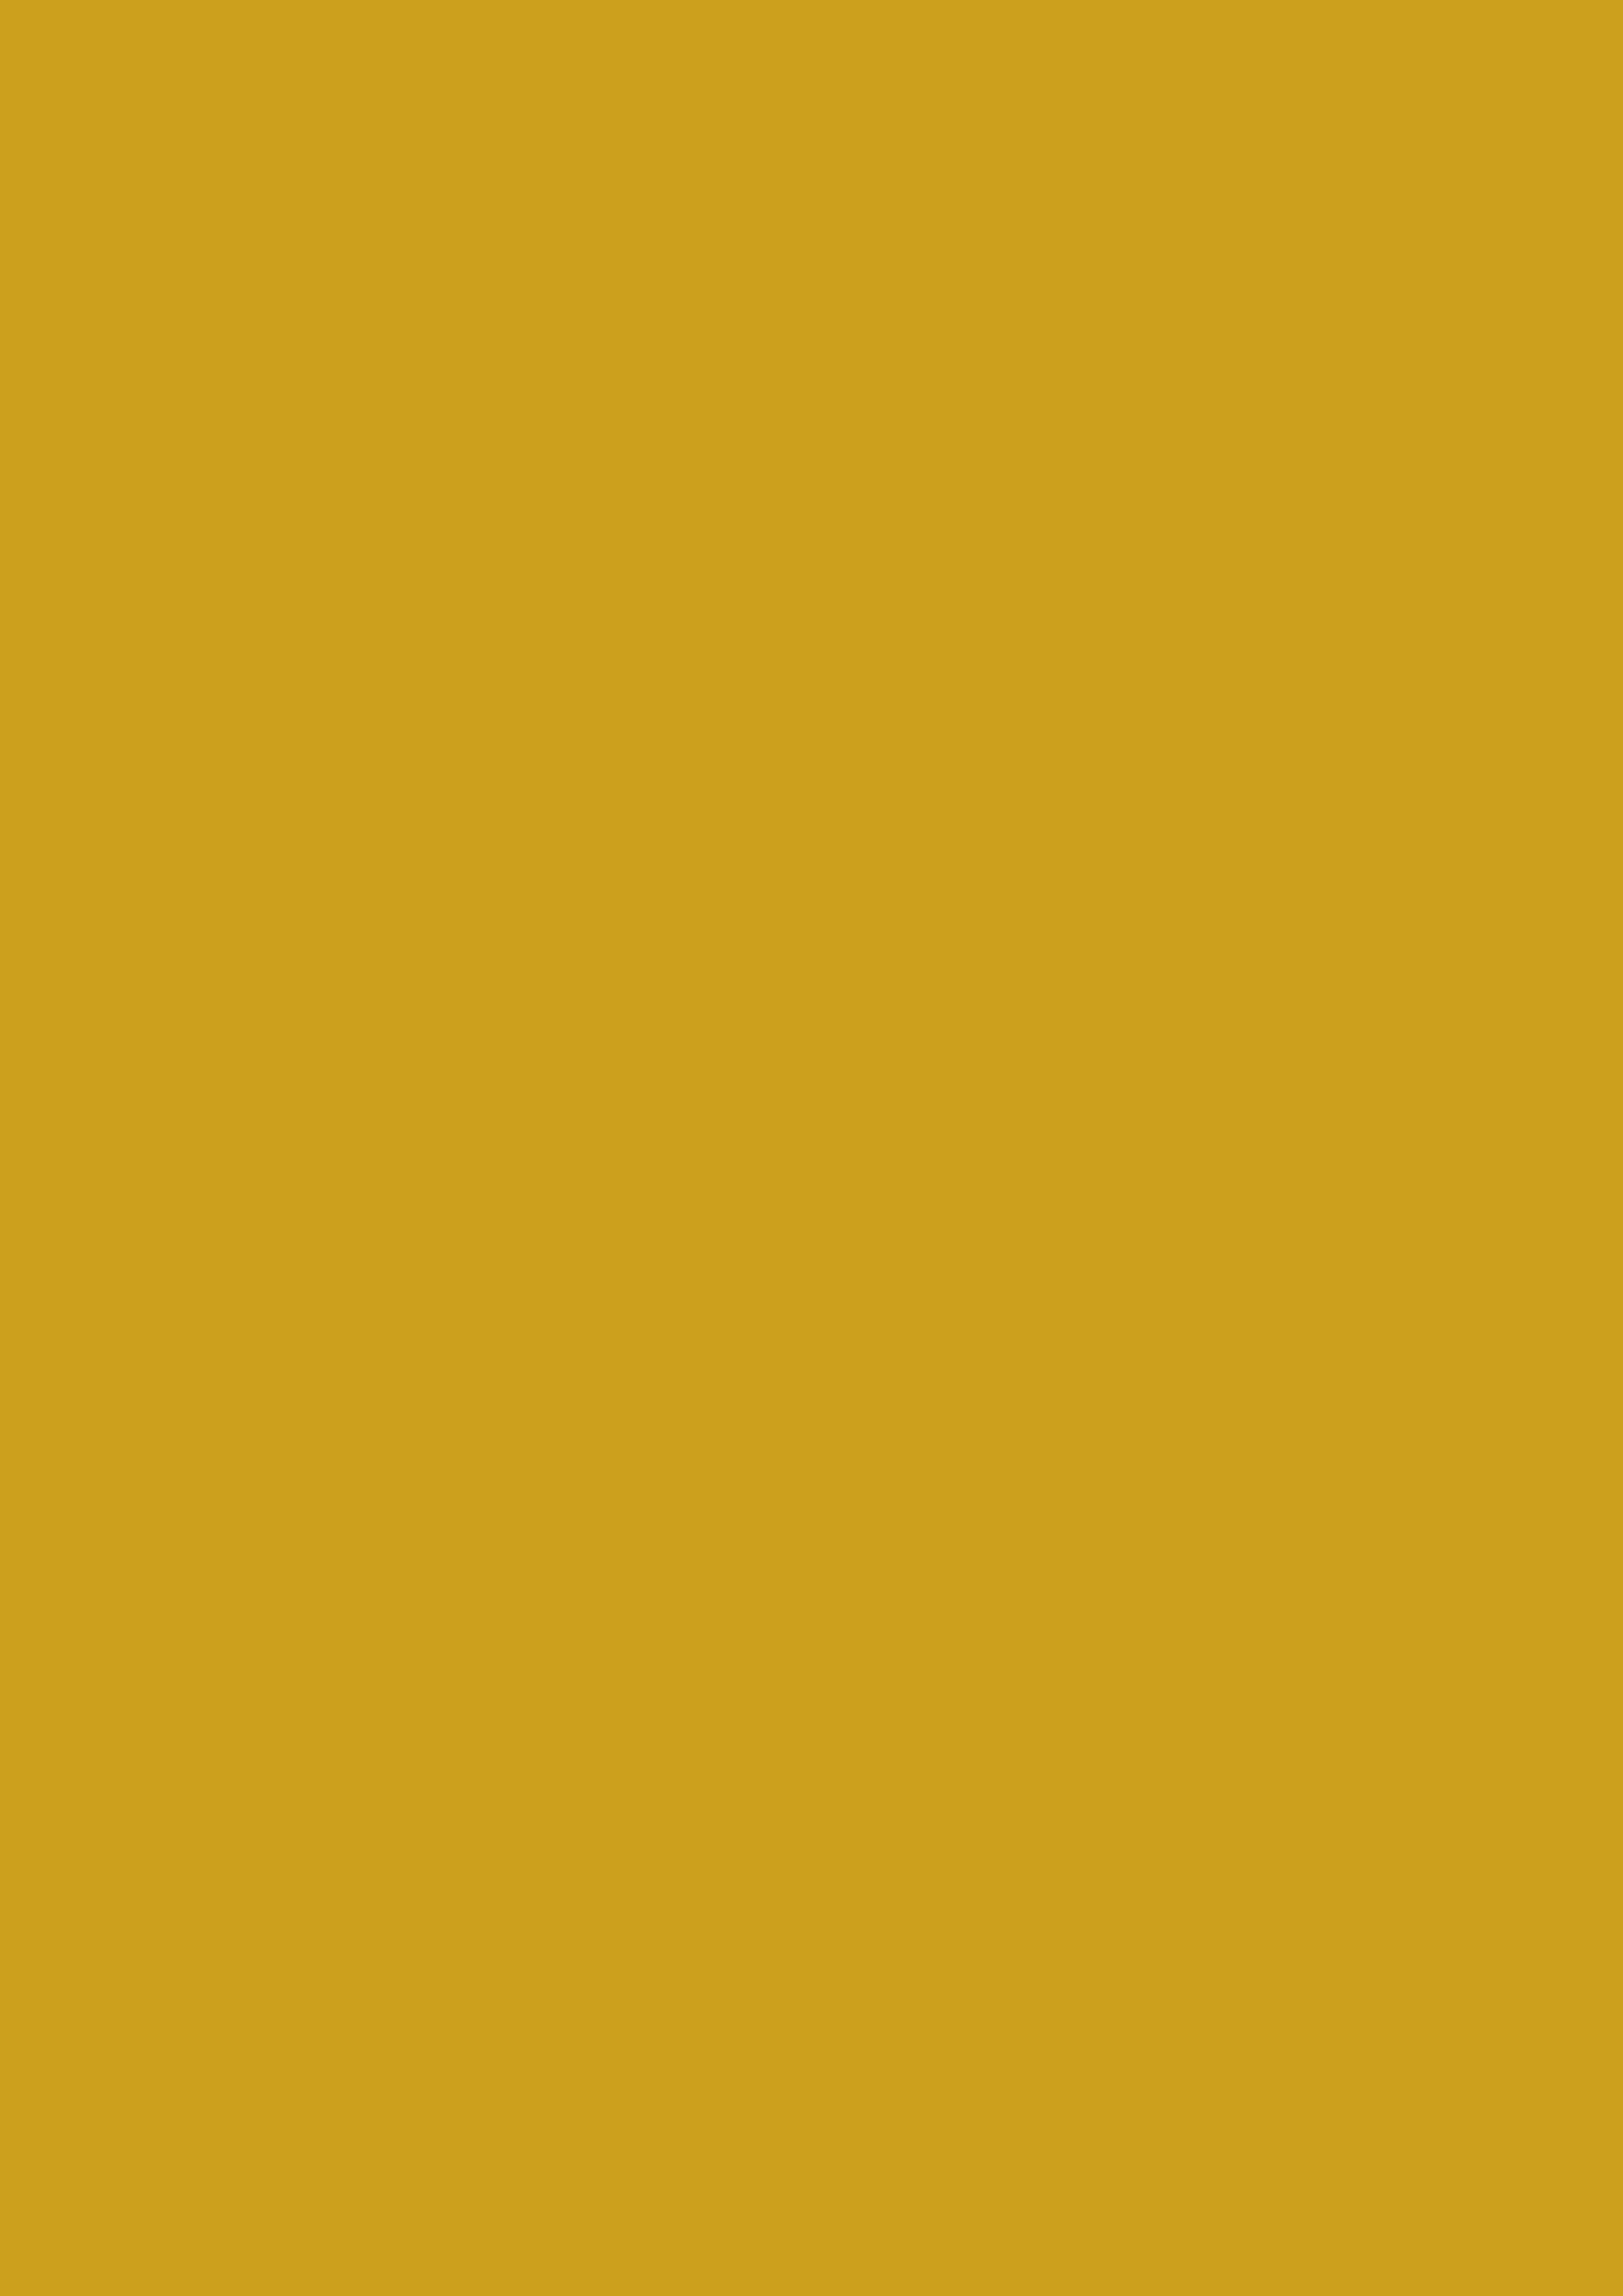 2480x3508 Lemon Curry Solid Color Background